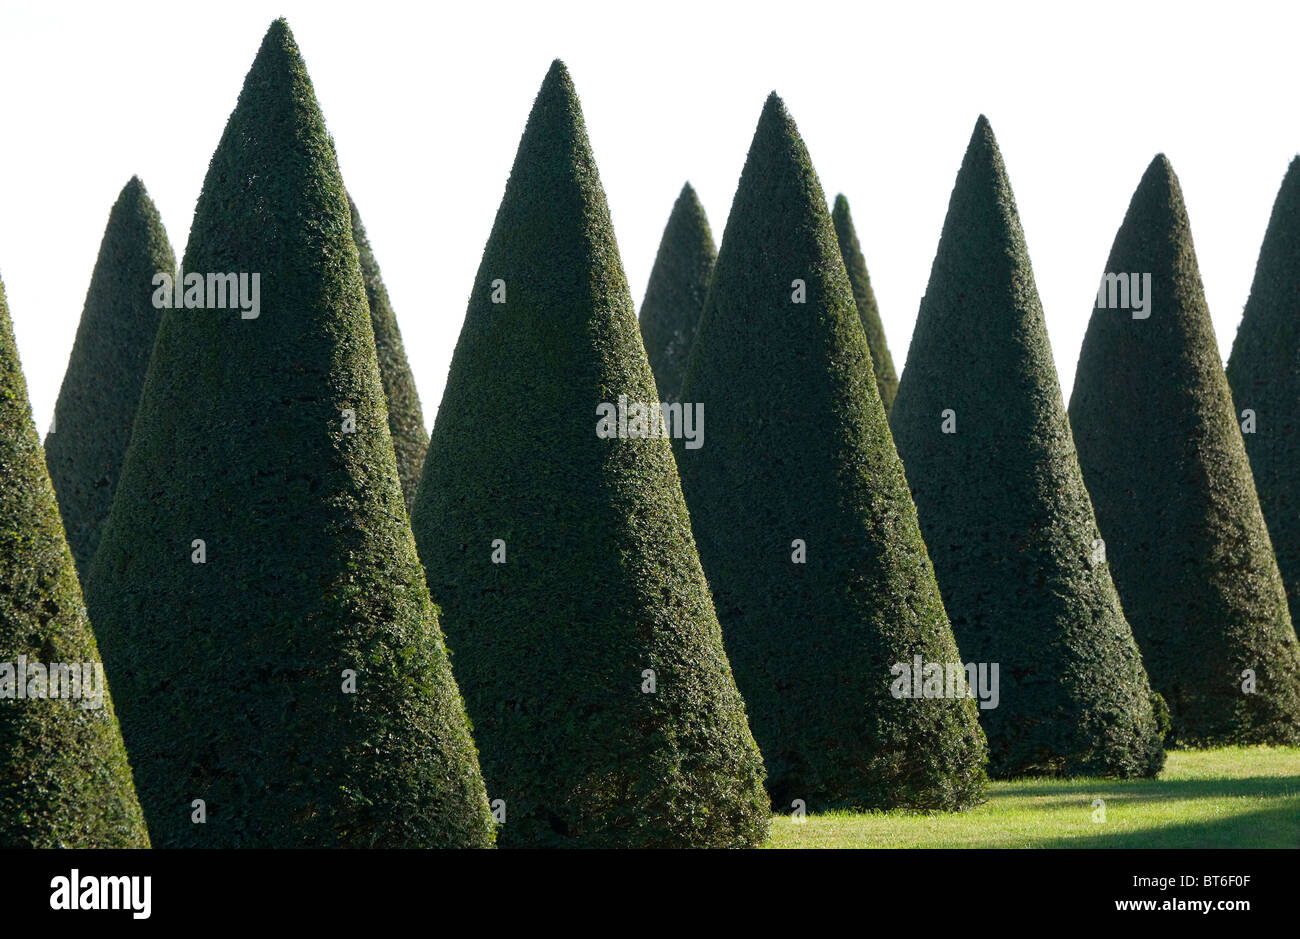 clipped conical shape yew trees - Stock Image